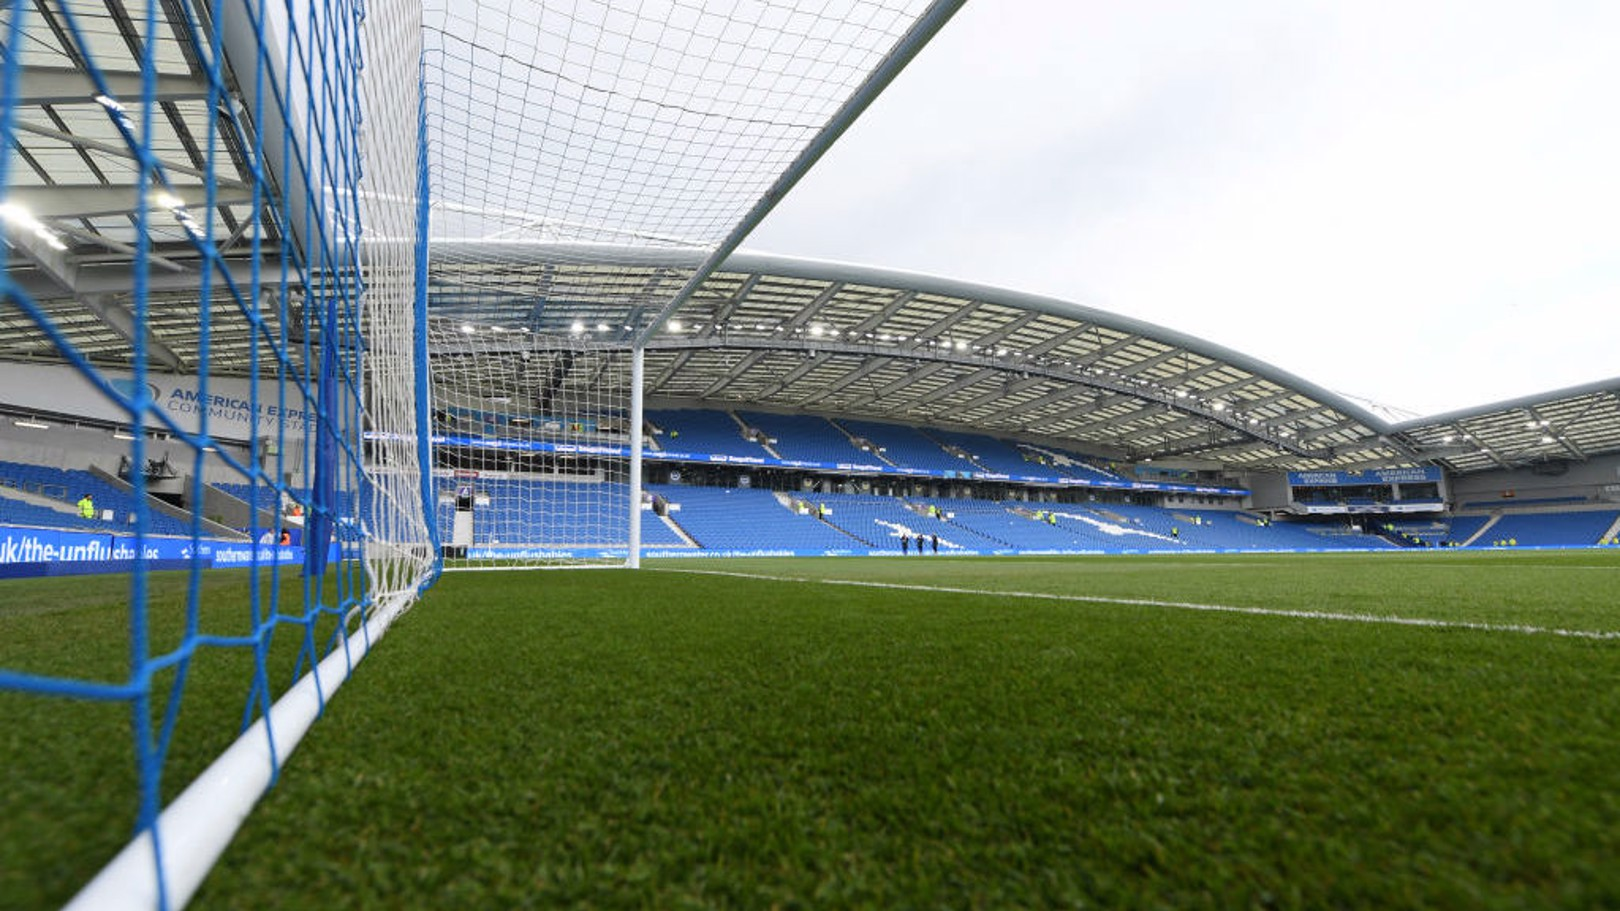 TICKET INFO: Everything you need to know to purchase tickets for the game at Brighton